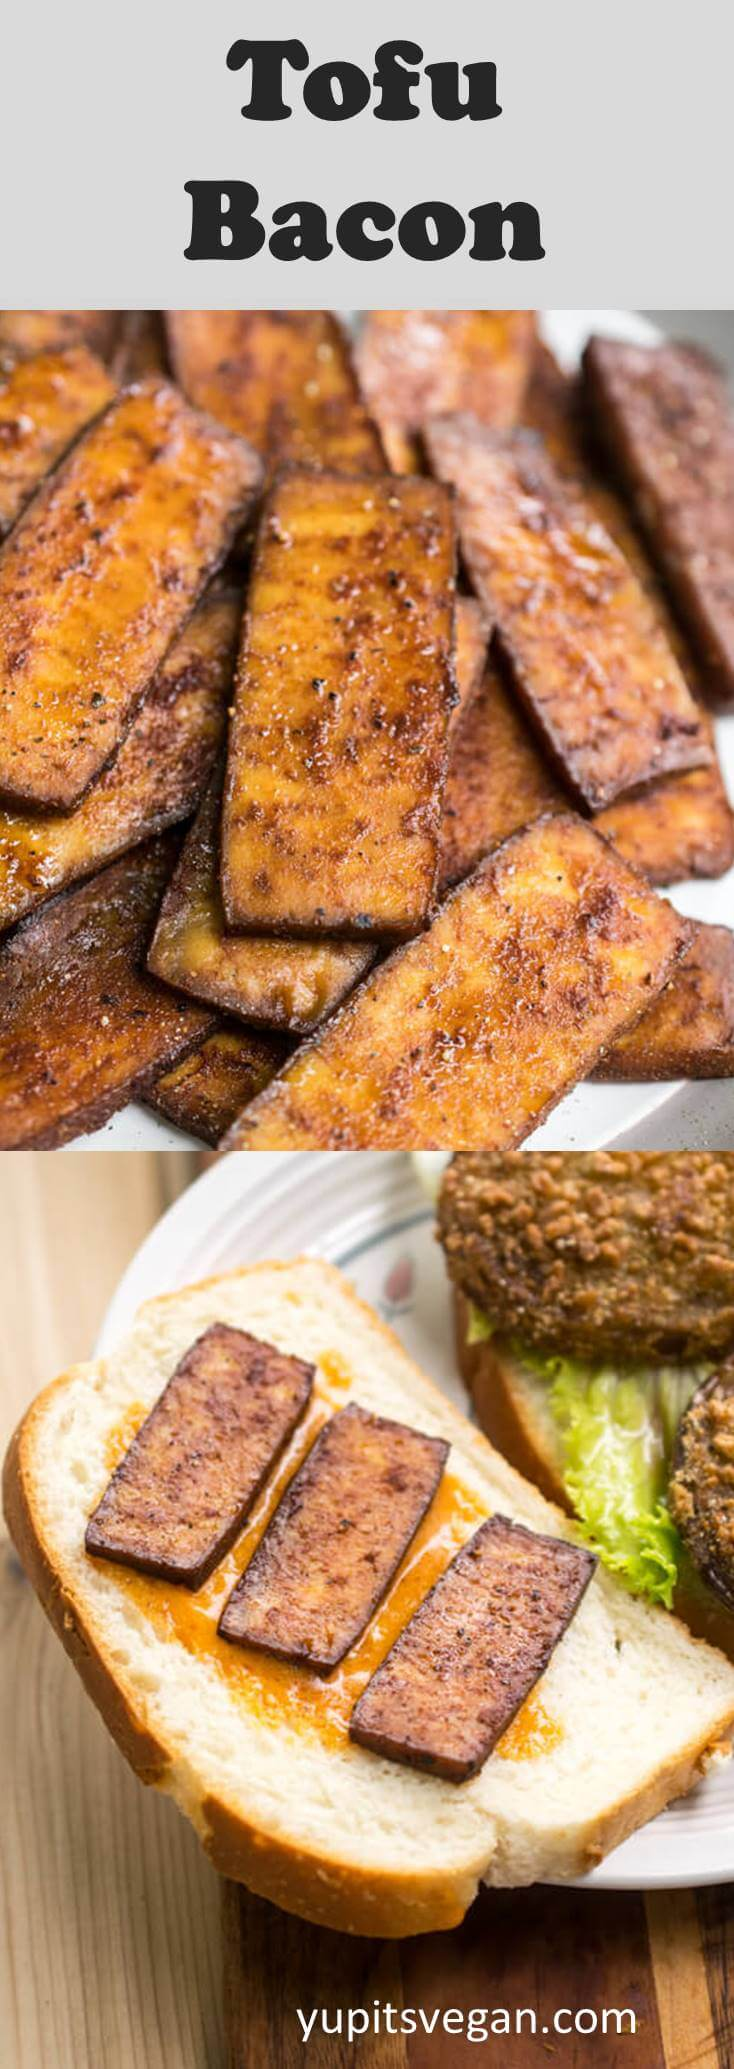 30-minute tofu bacon! A chewy, smoky, savory, high-protein vegan bacon substitute that's great on BLT sandwiches, in cooked dishes, and beyond! Vegetarian and refined sugar-free.